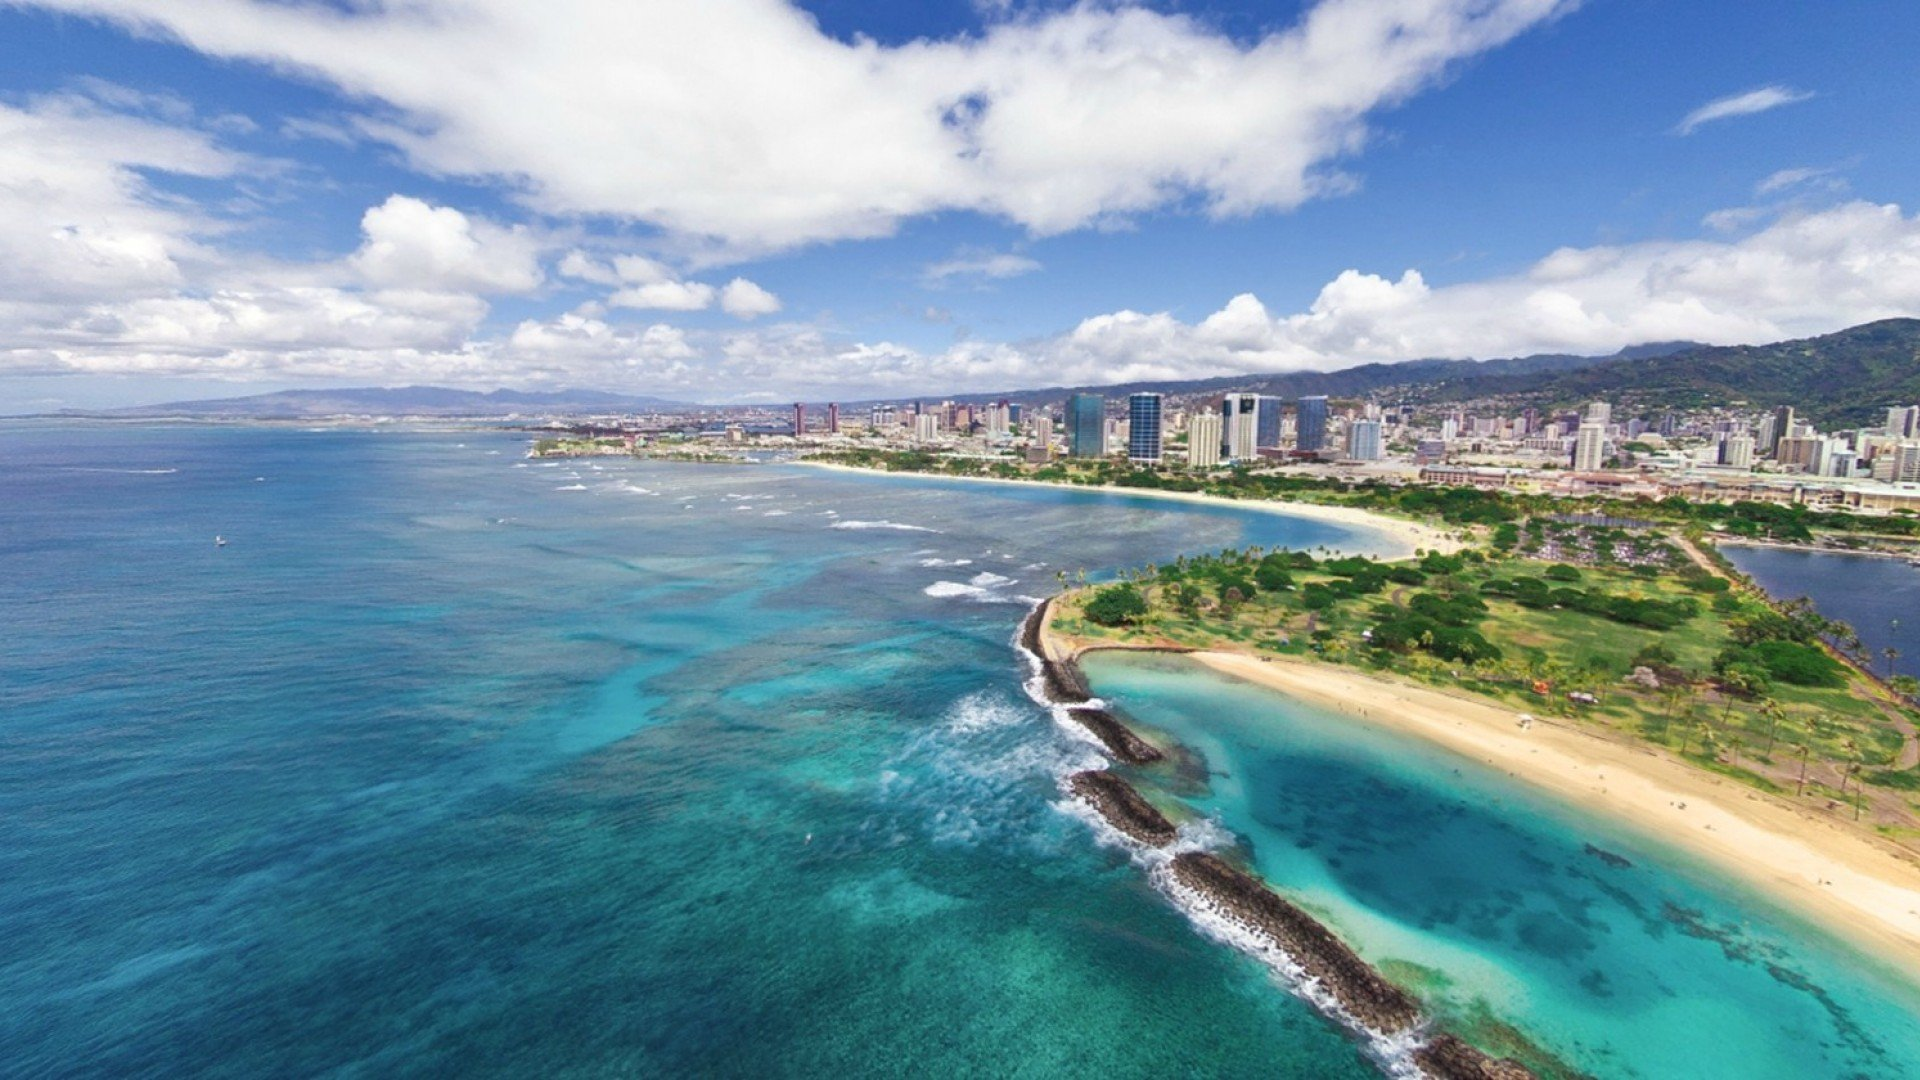 Beach Wallpaper Hawaii Cityscapes Ocean Clouds Landscapes Hawaiian